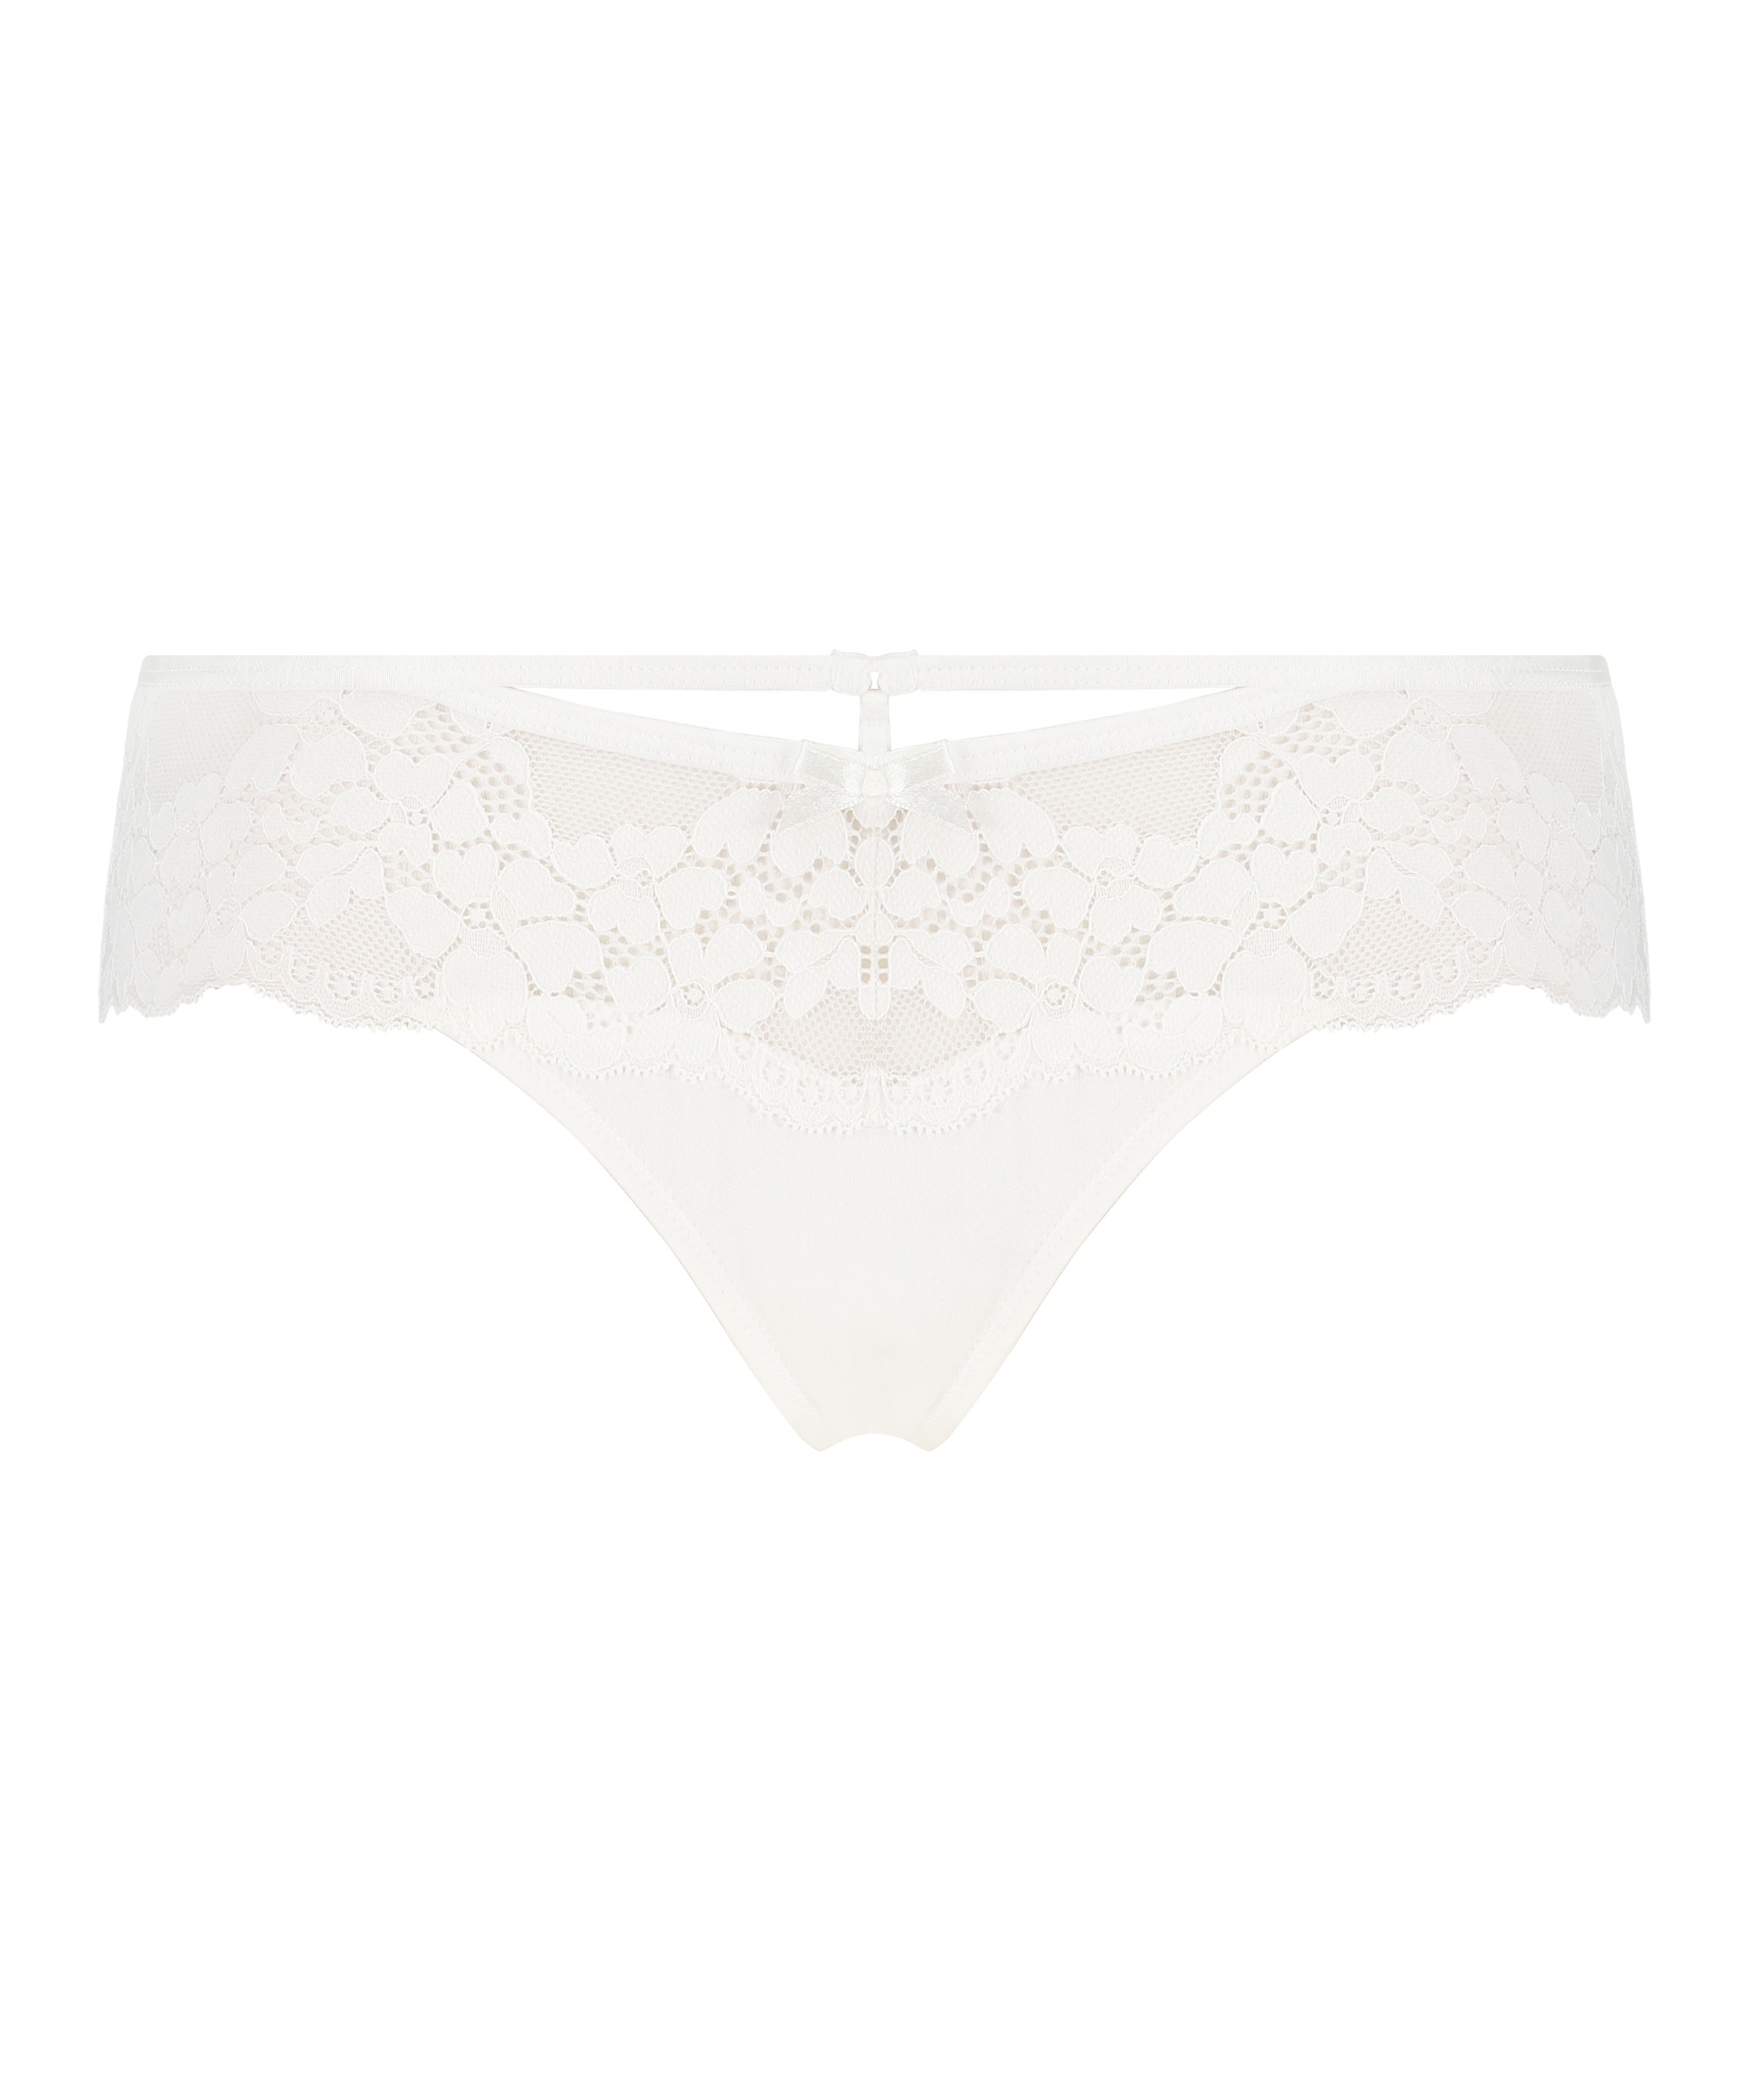 Nellie Thong Boxers, White, main